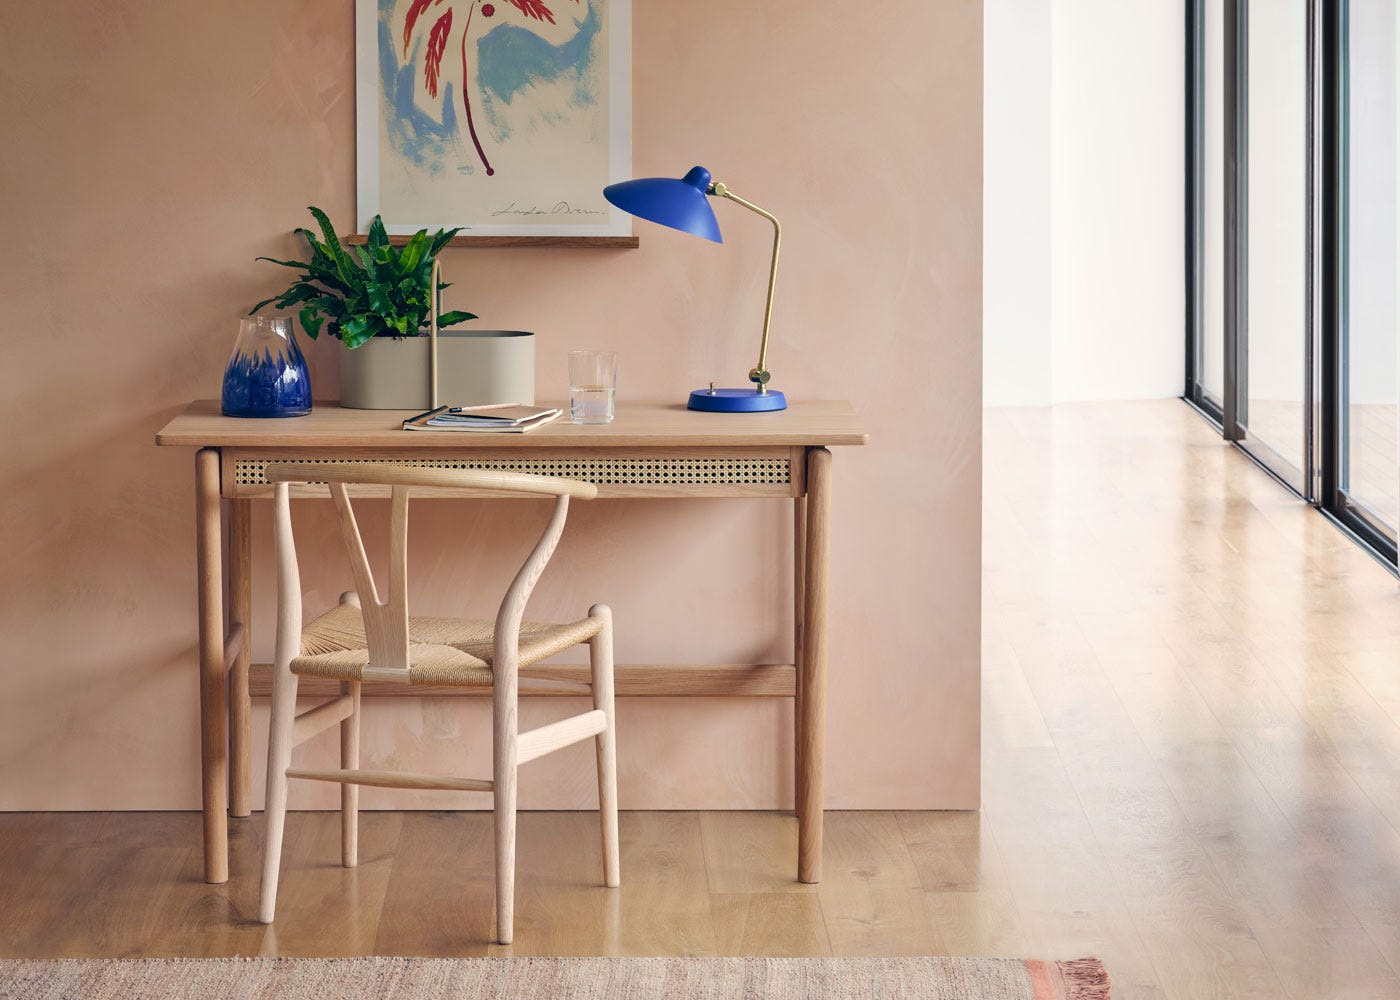 As shown: Flete desk paired with CH24 Wishbone chair, Milton desk lamp in blue.